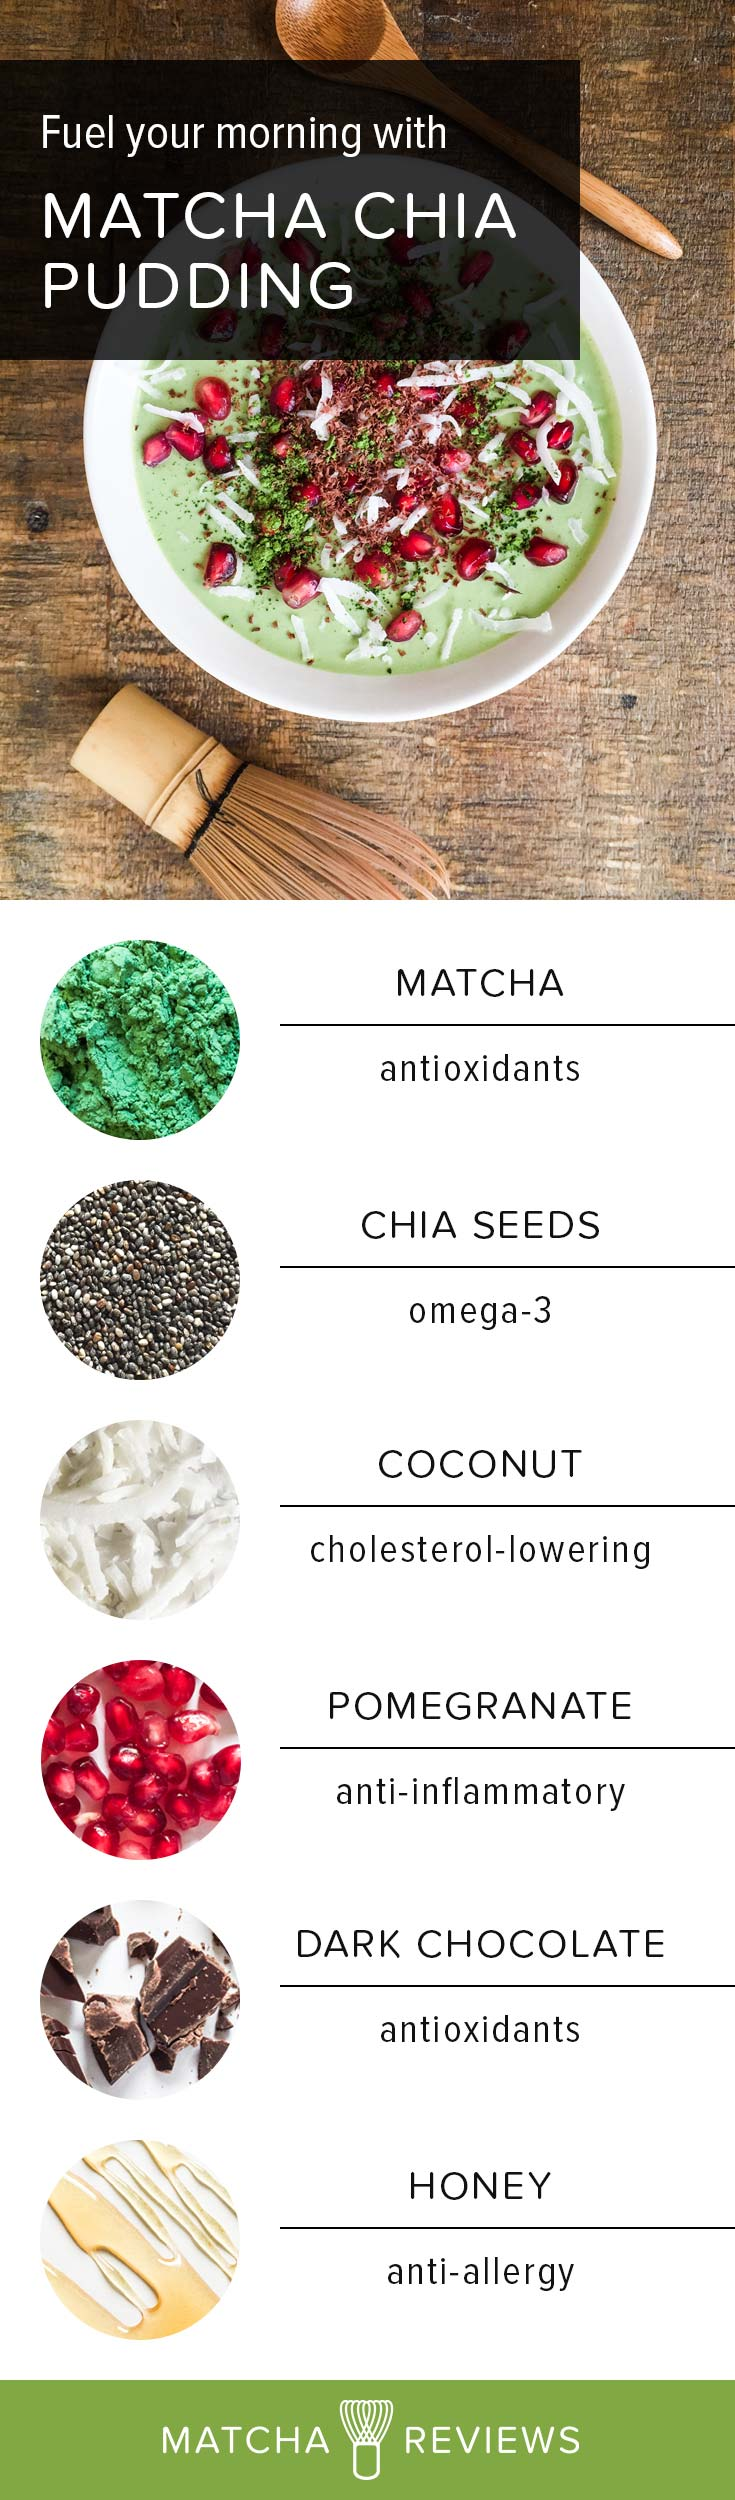 Matcha Reviews | Fuel Your Morning with Matcha Chia Pudding (Healthy Ingredients)